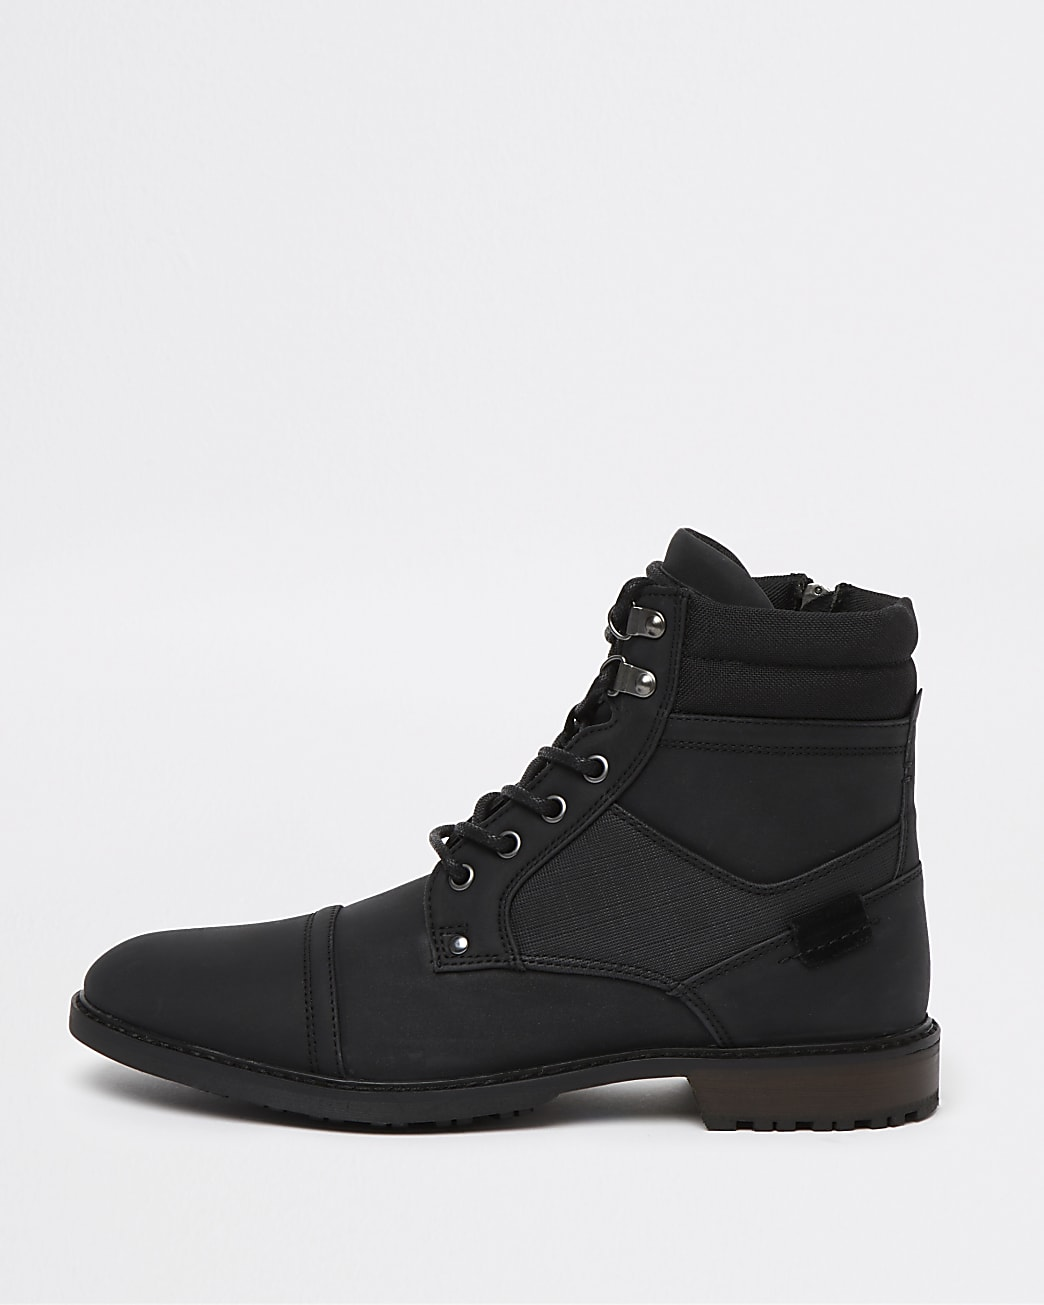 Black lace up military boots